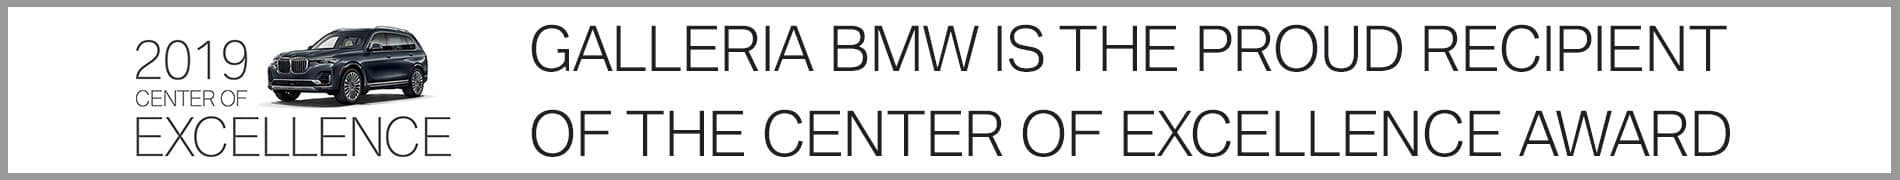 Galleria BMW Center of Excellence